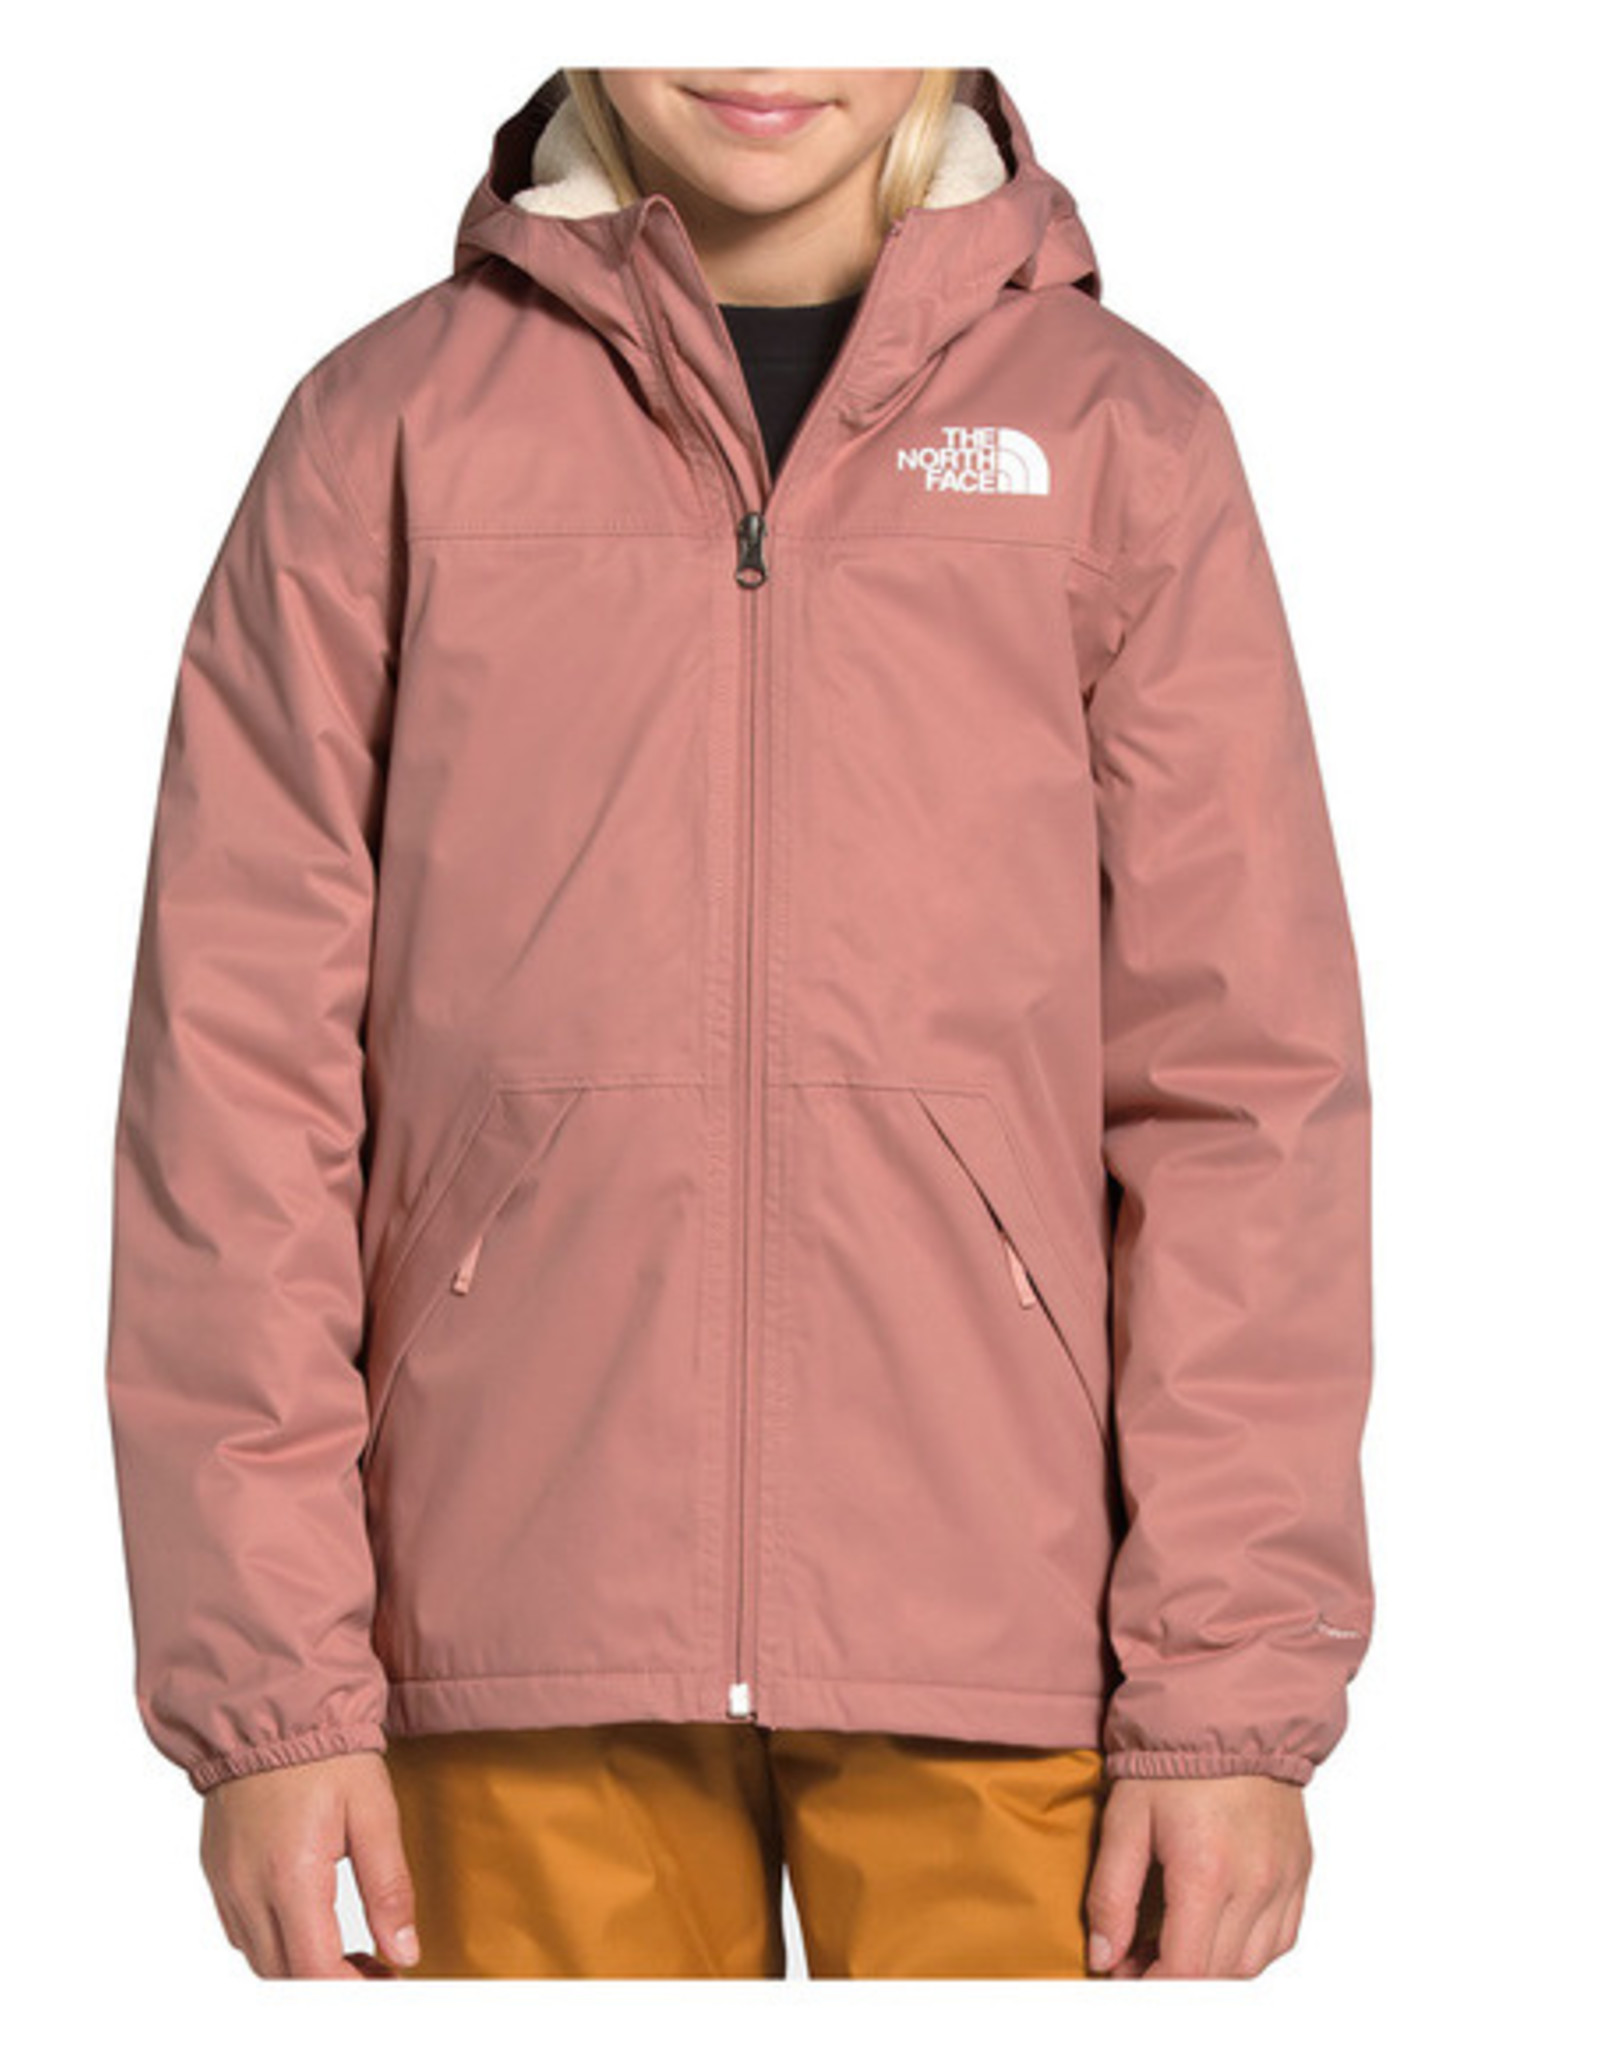 The North Face The North Face Girl's Warm Storm Rain Jacket -W2020